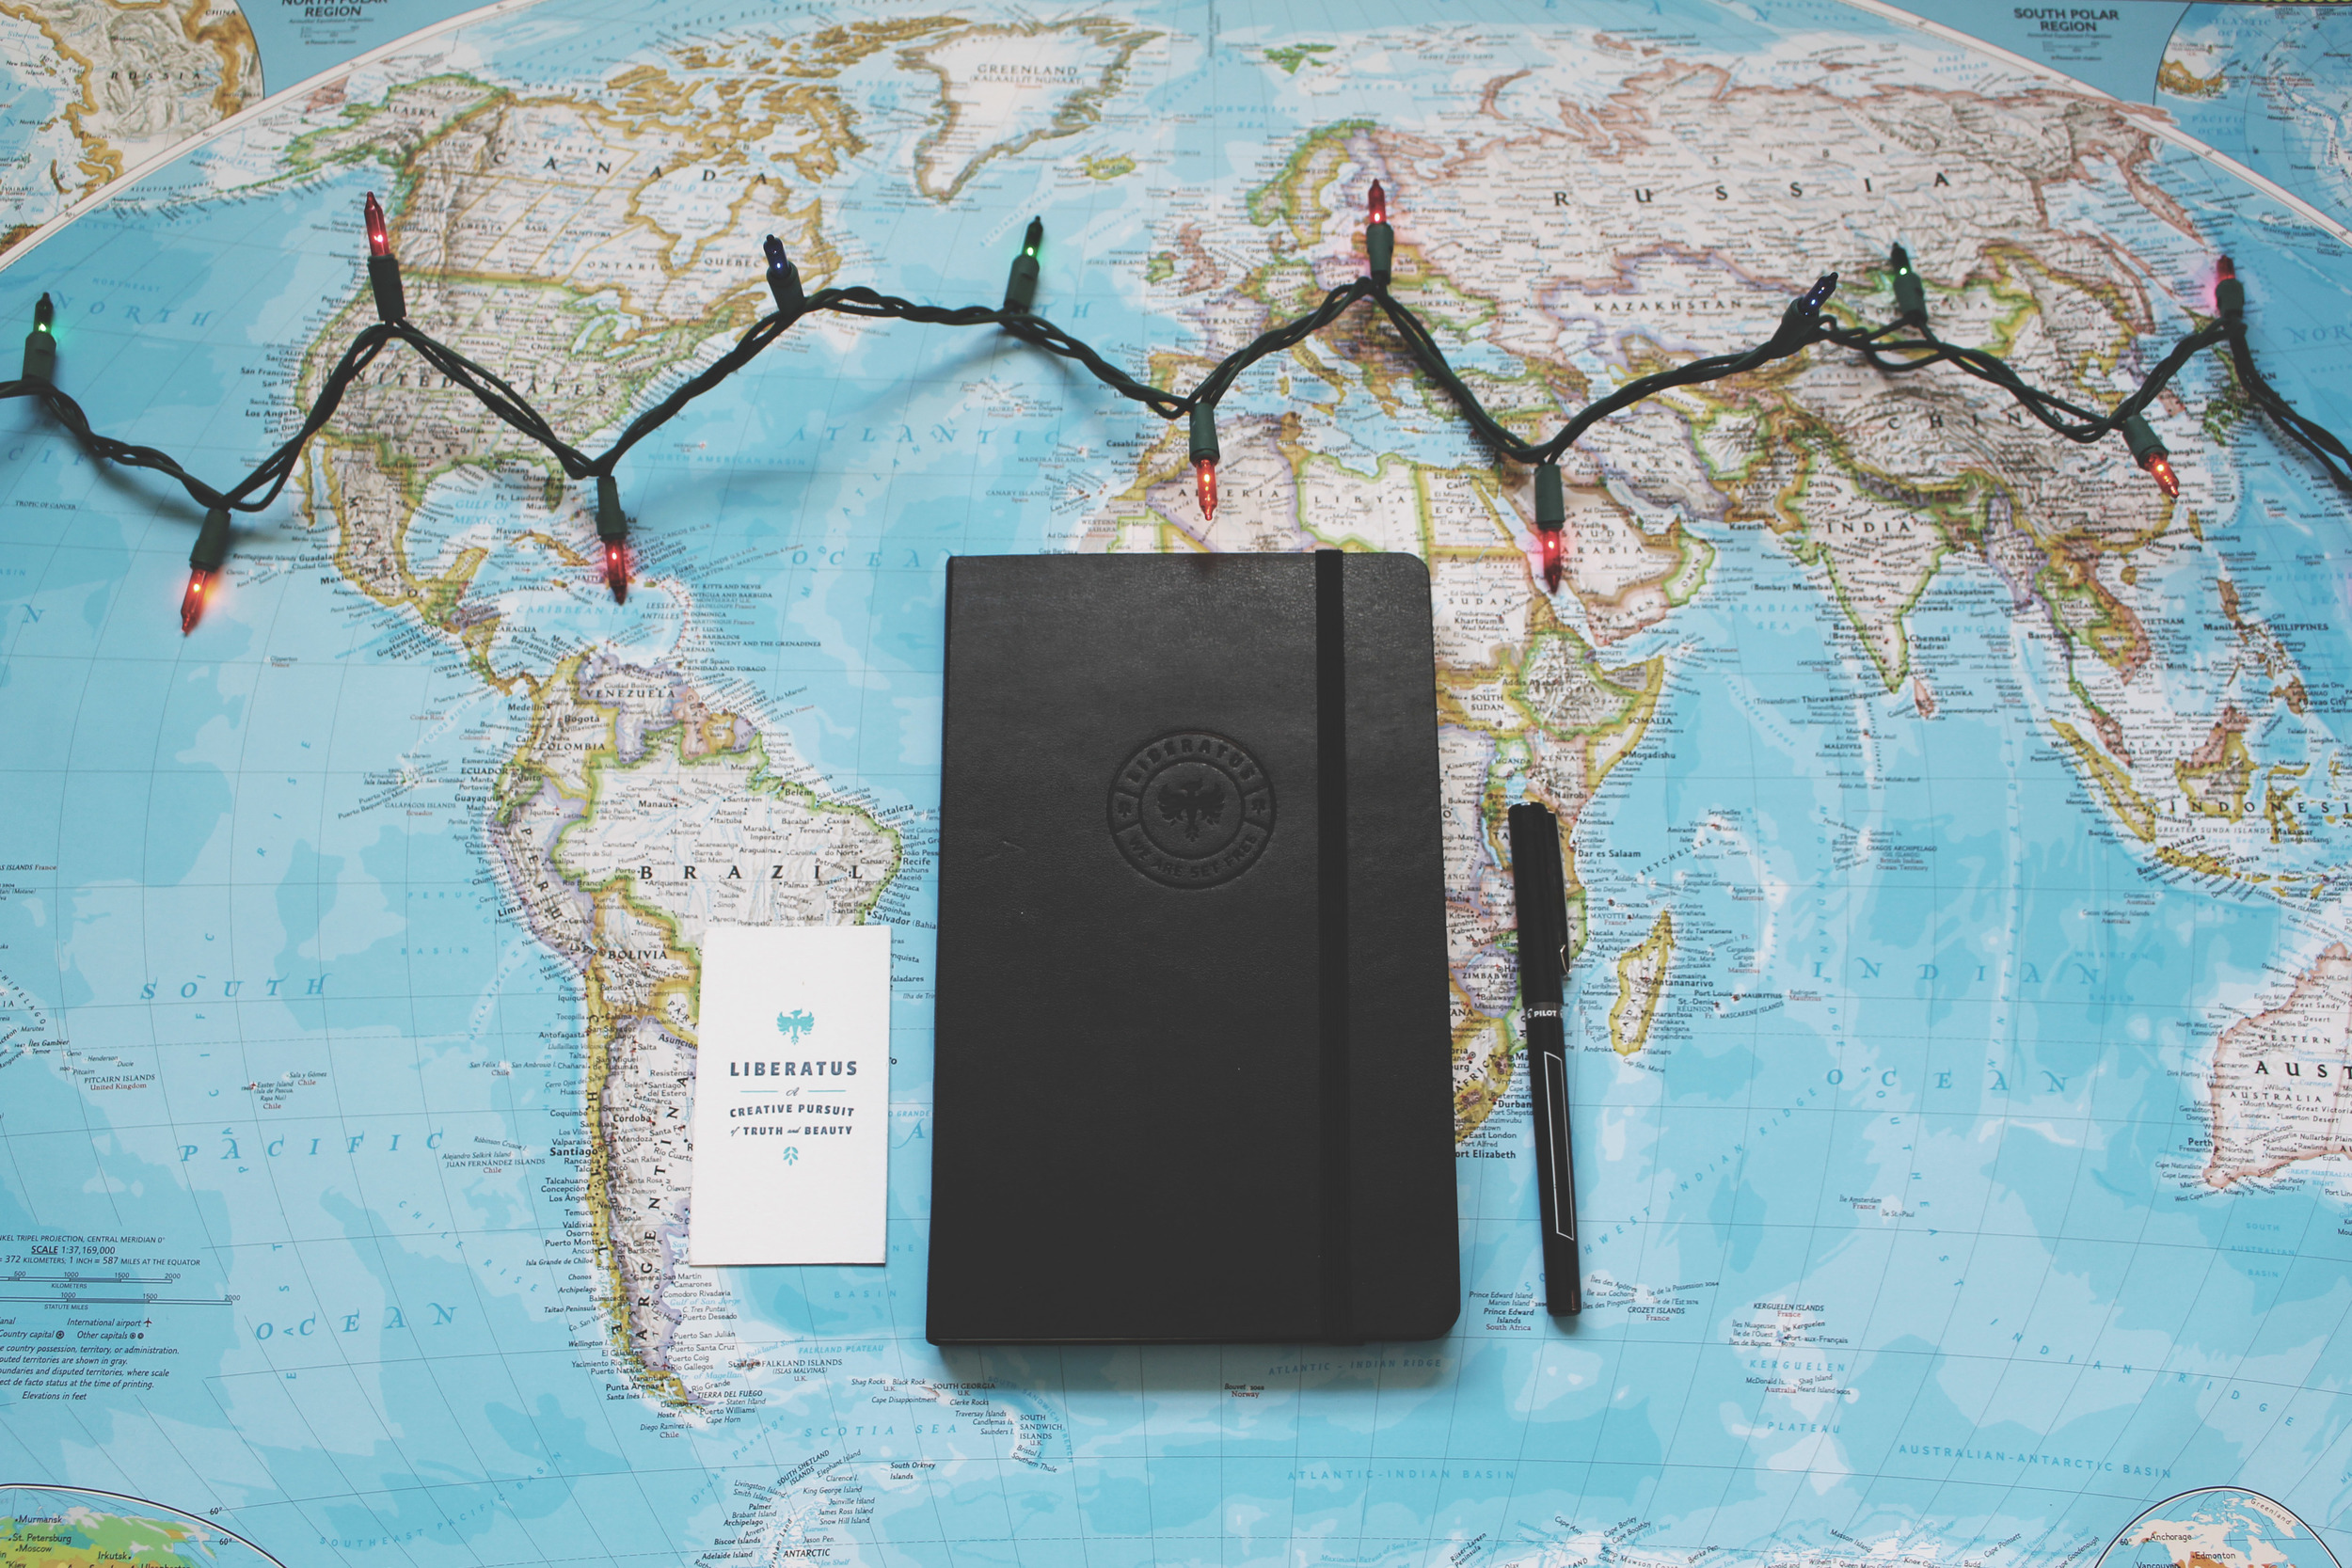 Wherever your travels take you this holiday season, write the story of healing through freedom with us, or give one of our customized Moleskine journals as a gift.